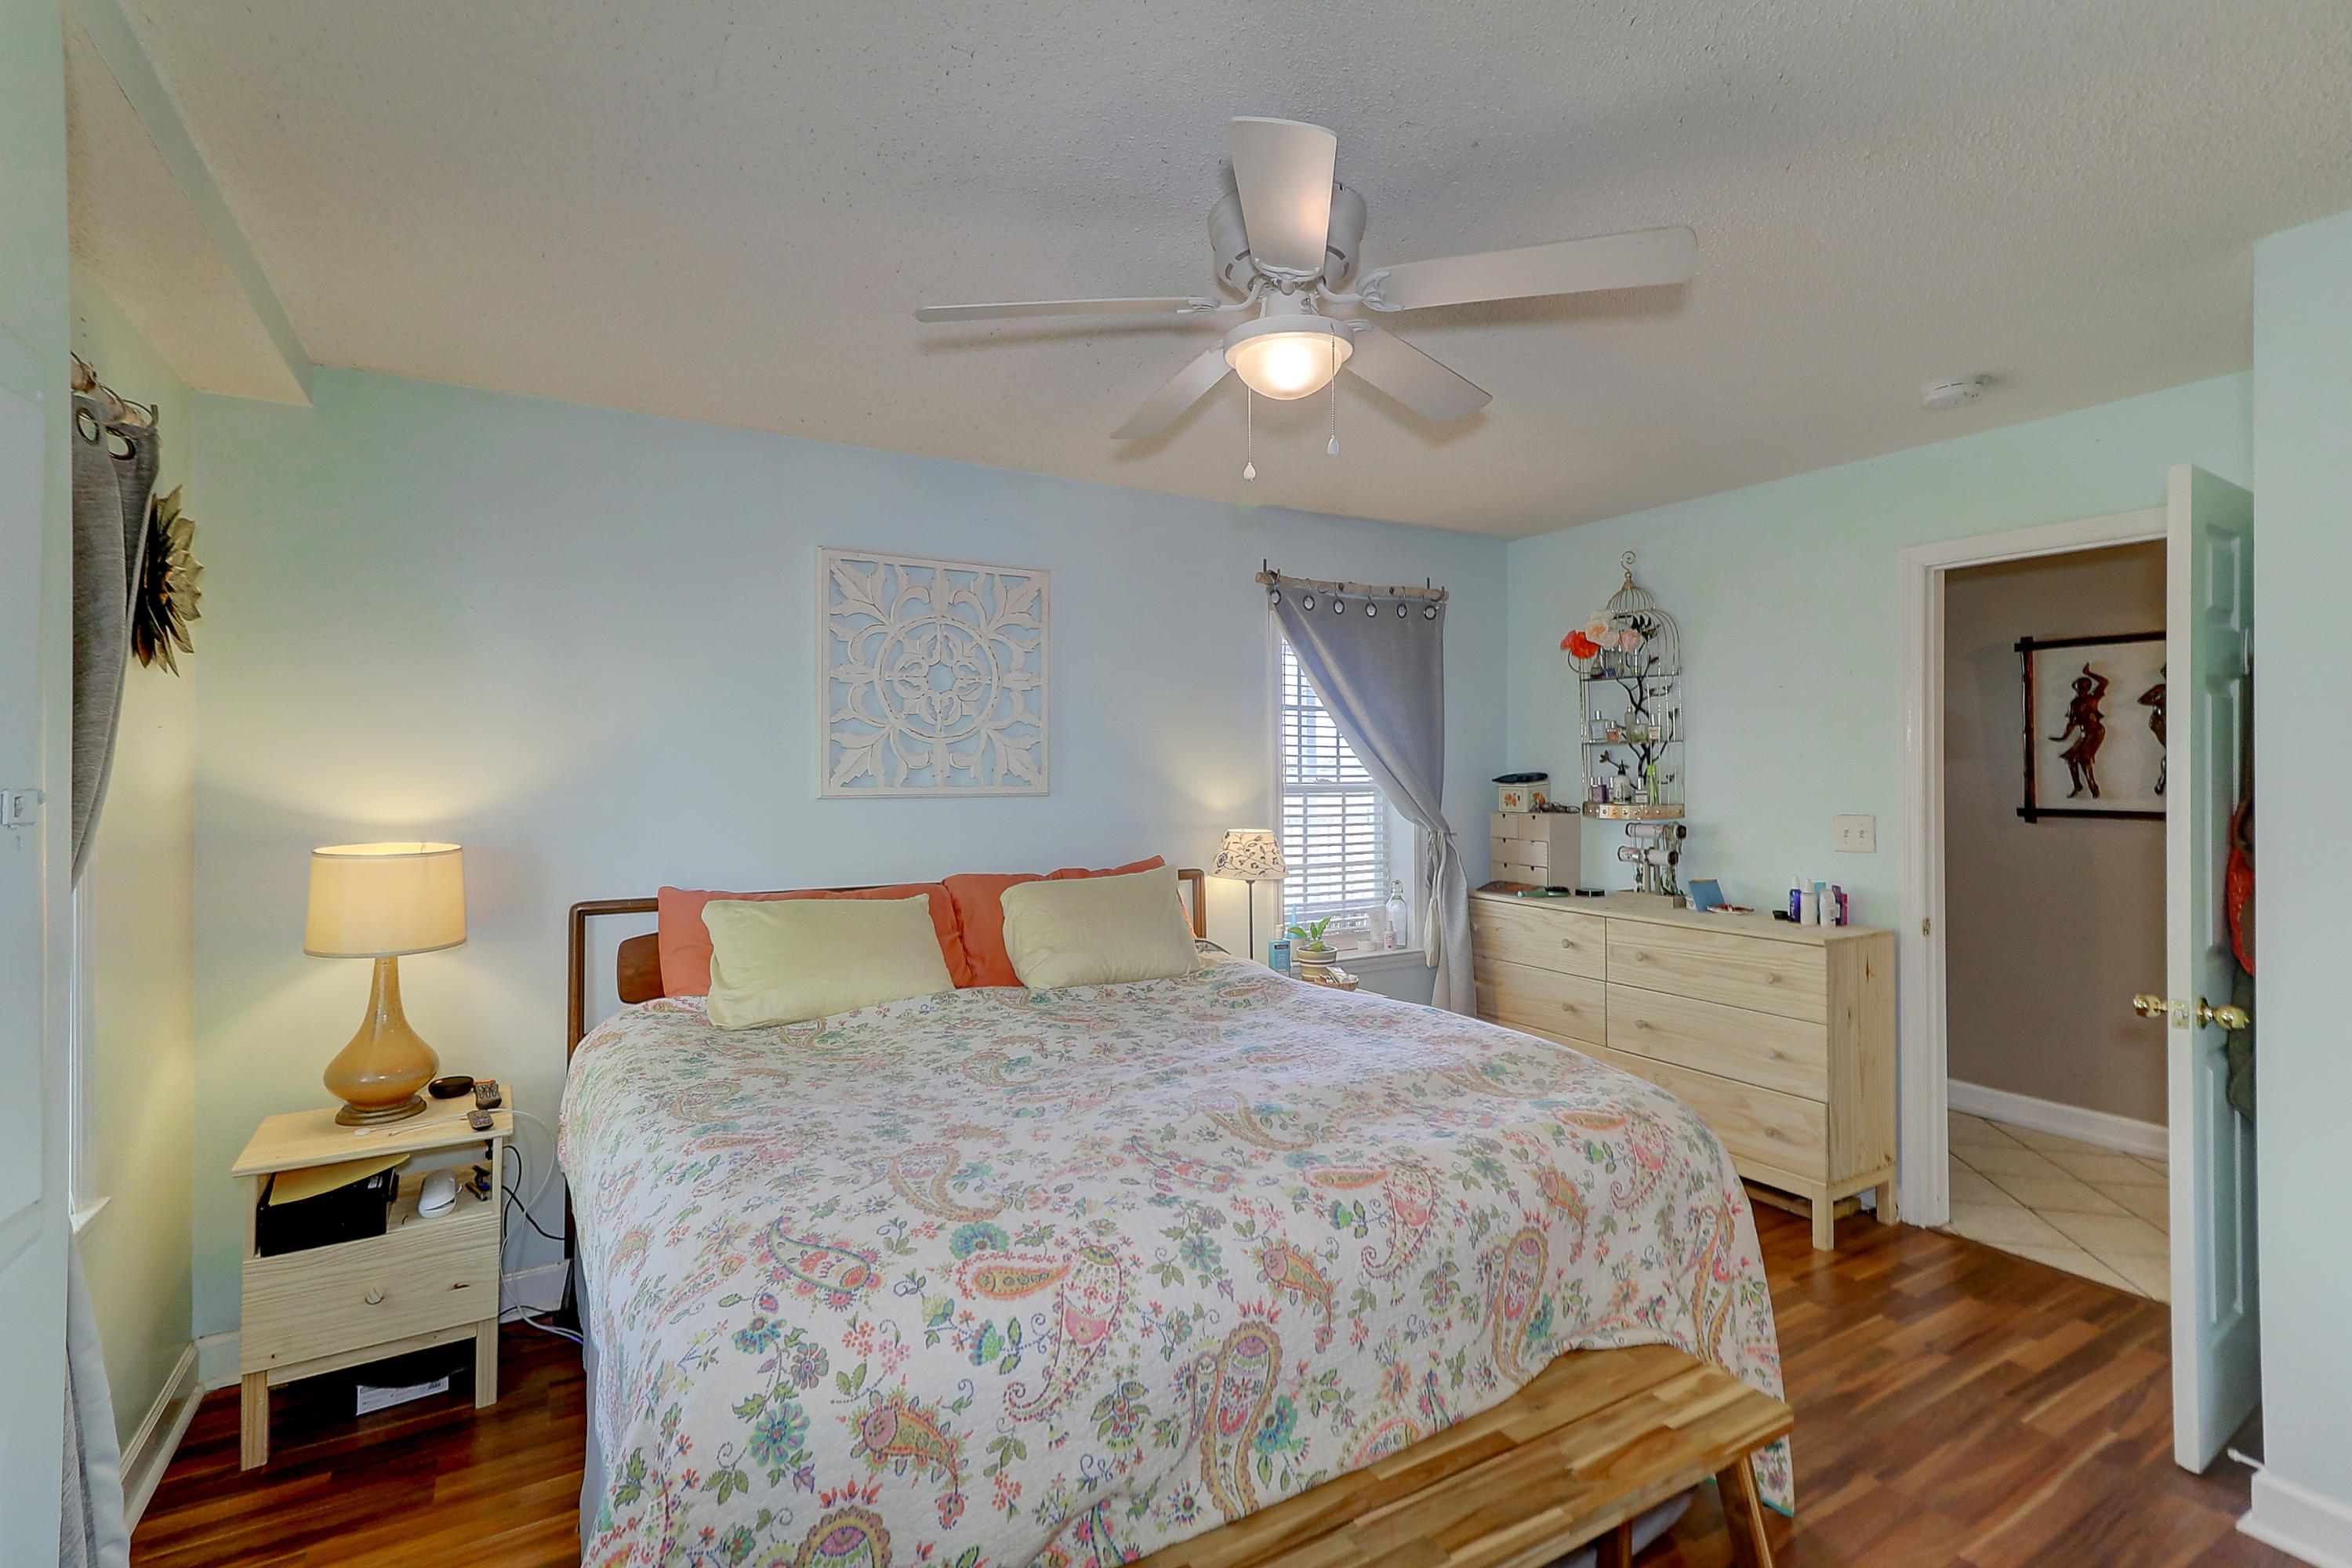 Turn of River Homes For Sale - 2395 Folly, Folly Beach, SC - 15